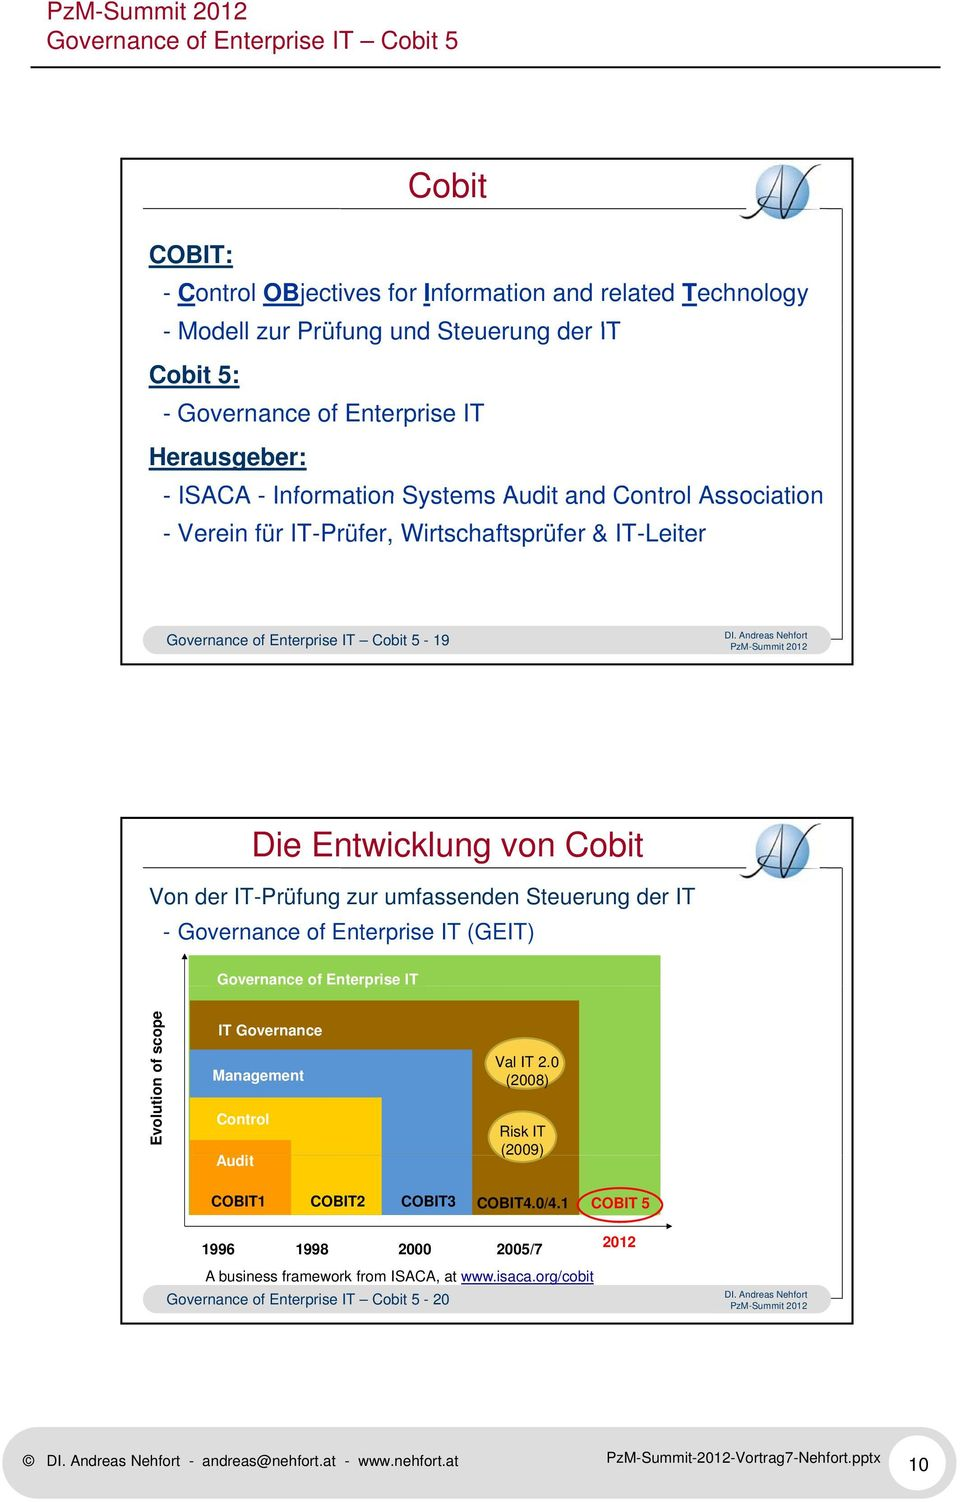 Steuerung der IT - of Enterprise IT (GEIT) of Enterprise IT Evolution of scope IT Management Control Audit Val IT 2.0 (2008) Risk IT (2009) COBIT1 COBIT2 COBIT3 COBIT4.